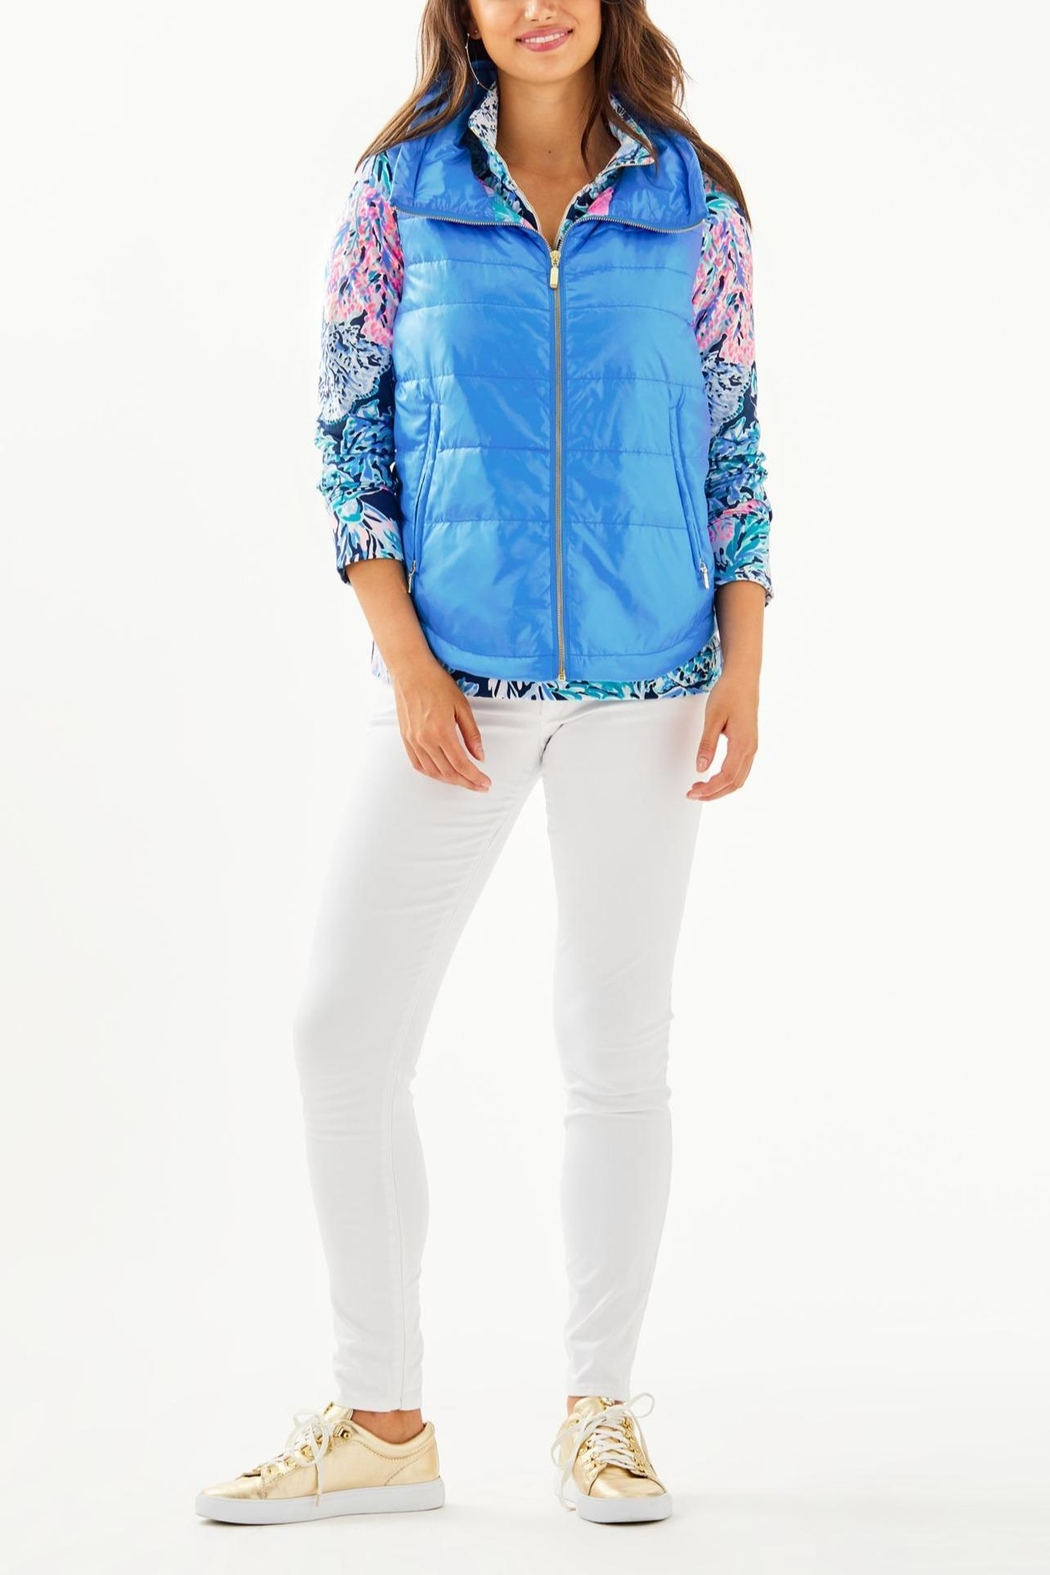 Lilly Pulitzer Palm Paradise Puffer-Vest - Back Cropped Image